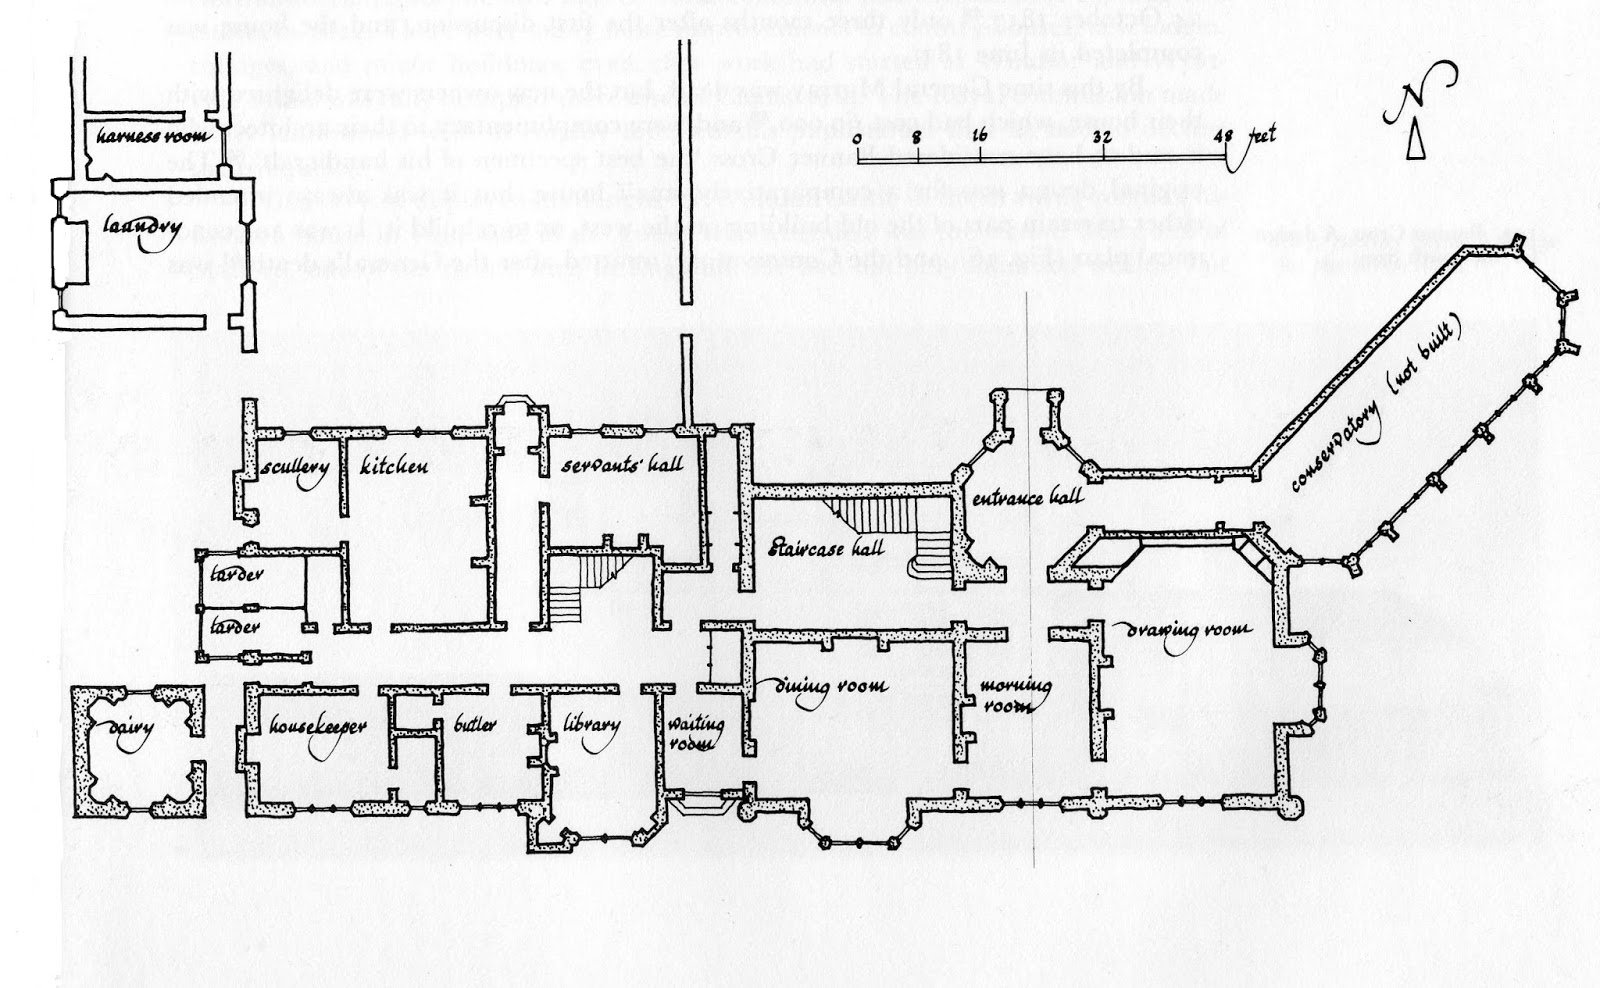 Landed Families Of Britain And Ireland December 2017 Starting Circuit Diagram For The 1952 53 Nash Statesman Banner Cross Hall Plan House As Rebuilt By Jeffry Wyatt In 1817 21 Main Block Later Service Wing After Linstrum 1972